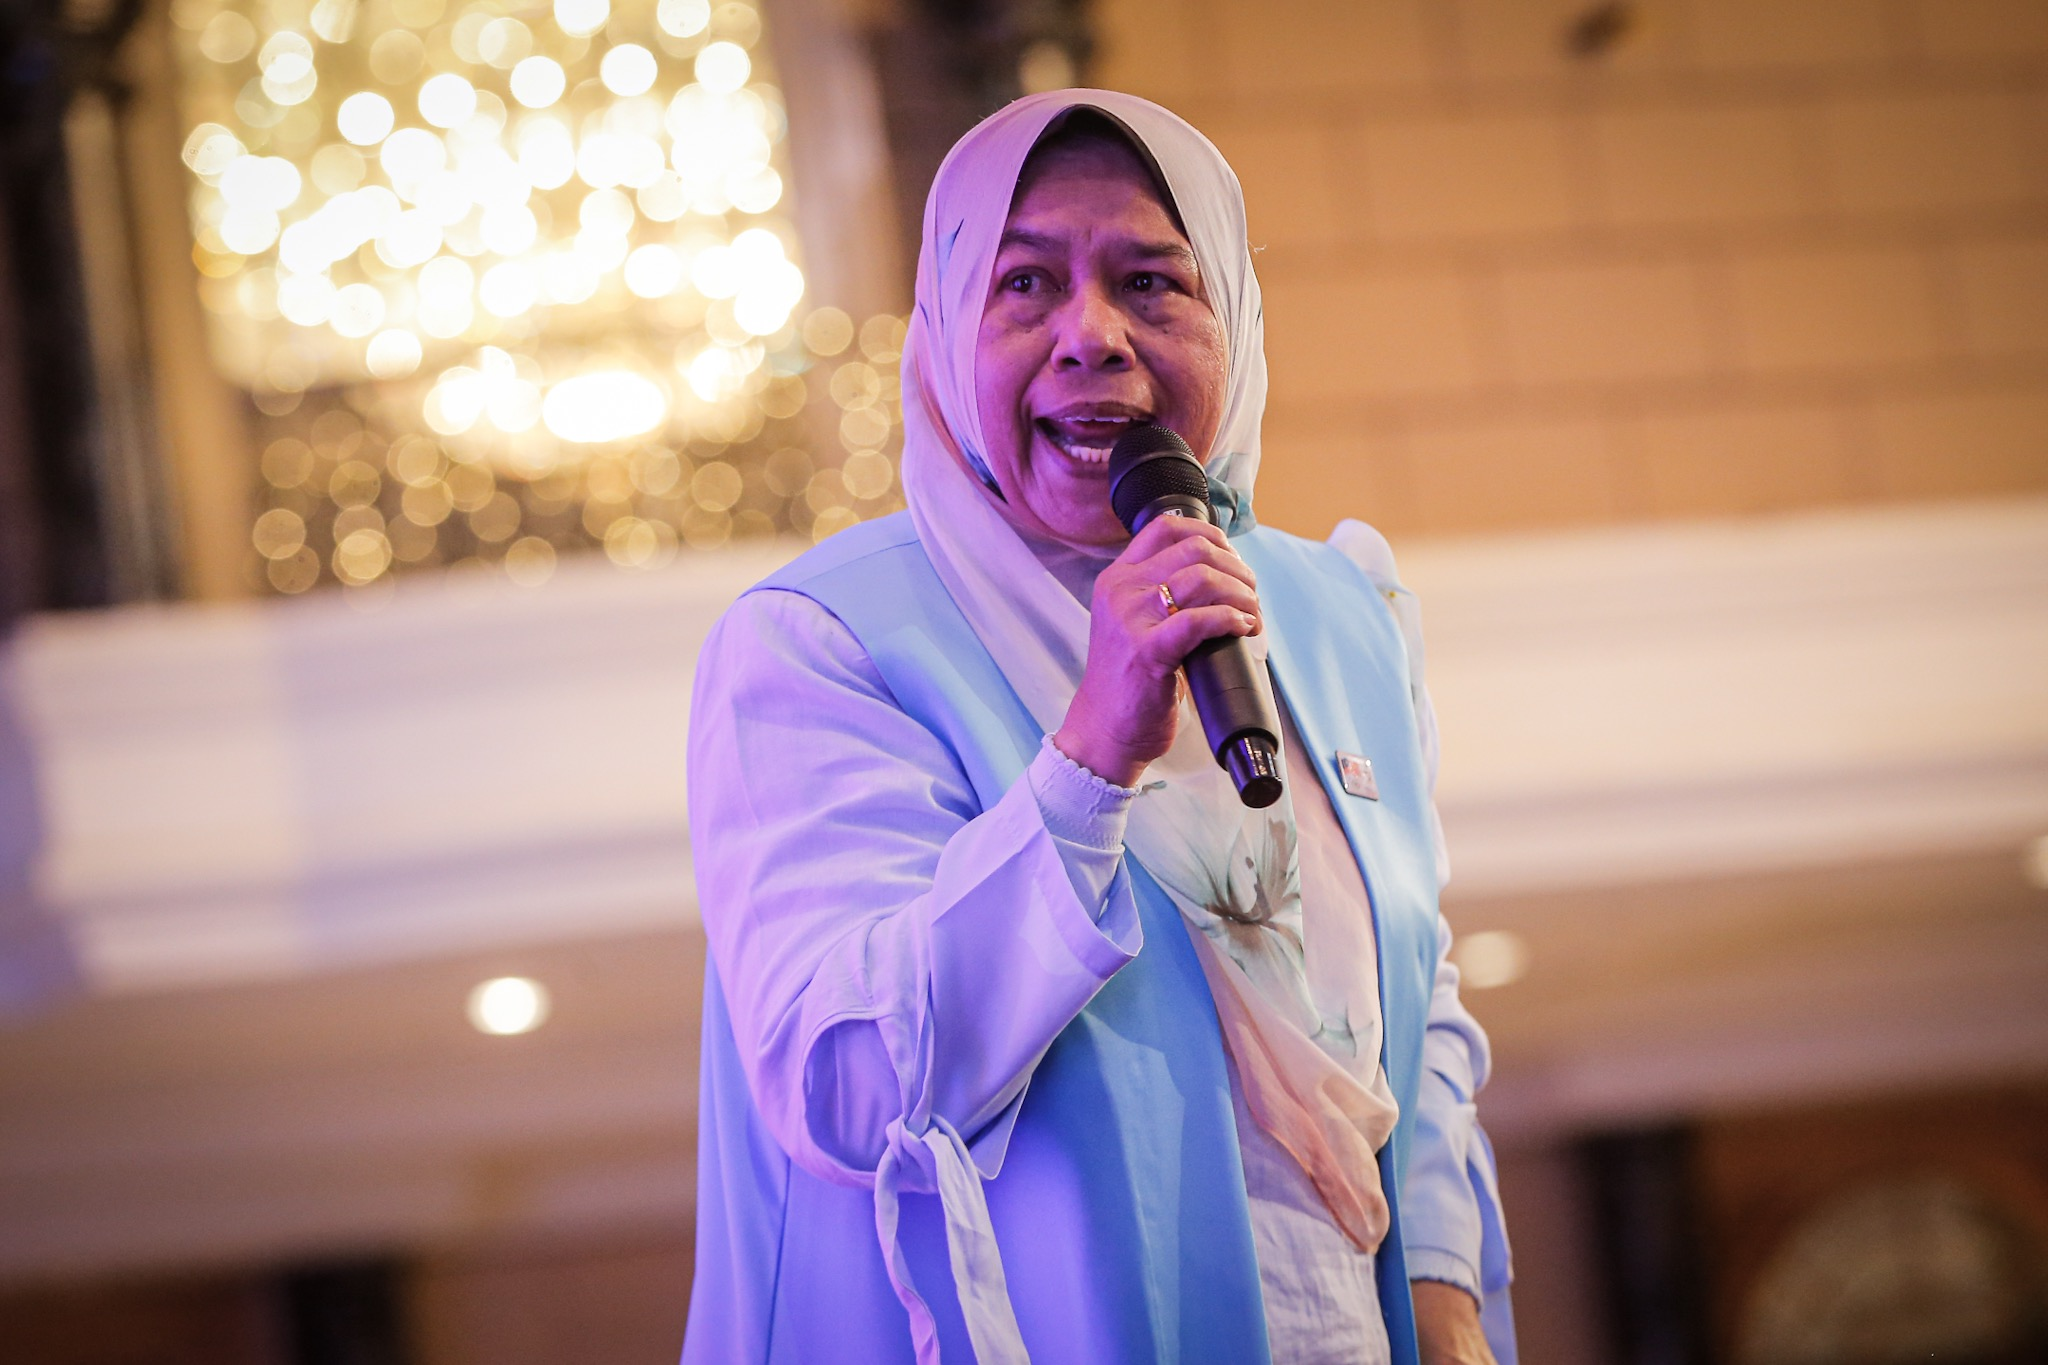 Sarawak PKR Women's wing questions if calls for Zuraida's sacking because of her gender